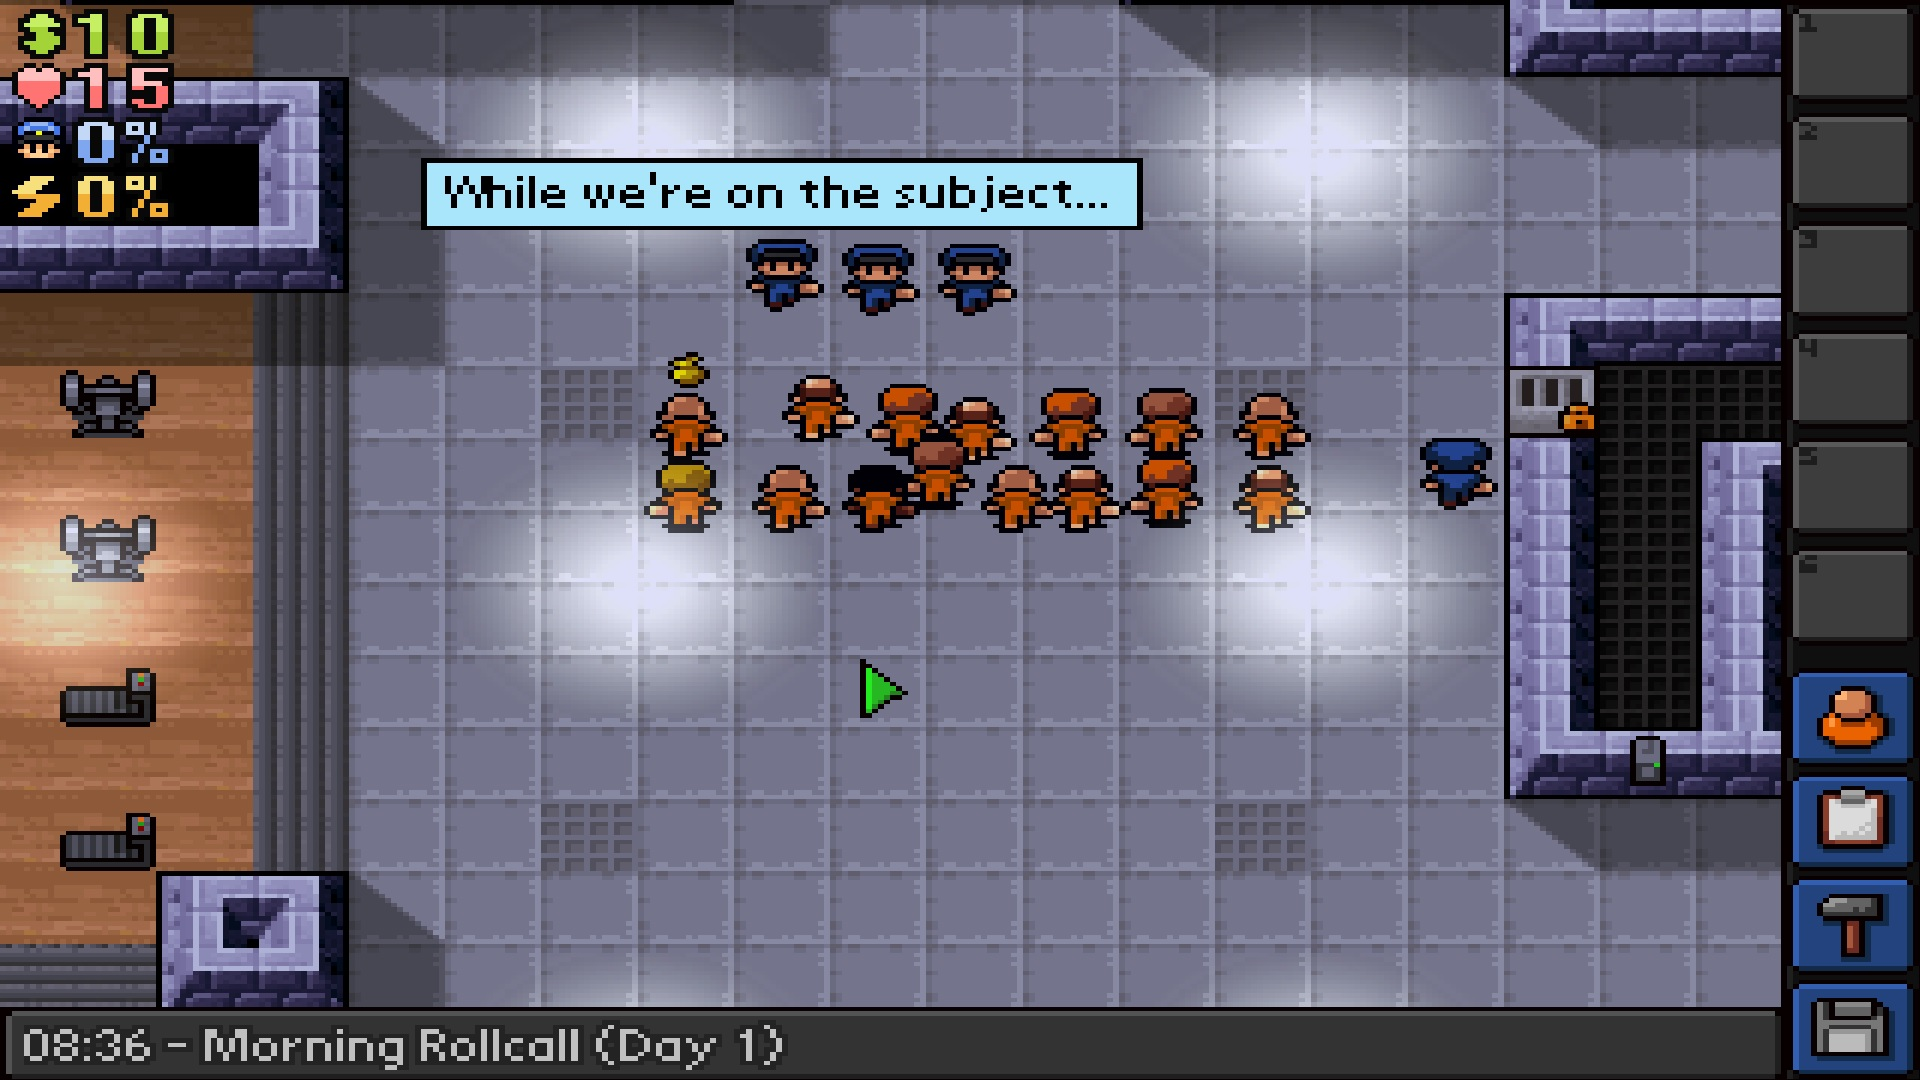 The Escapists - Fhurst Peak Correctional Facility [Online Game Code] by Team17 (Image #7)